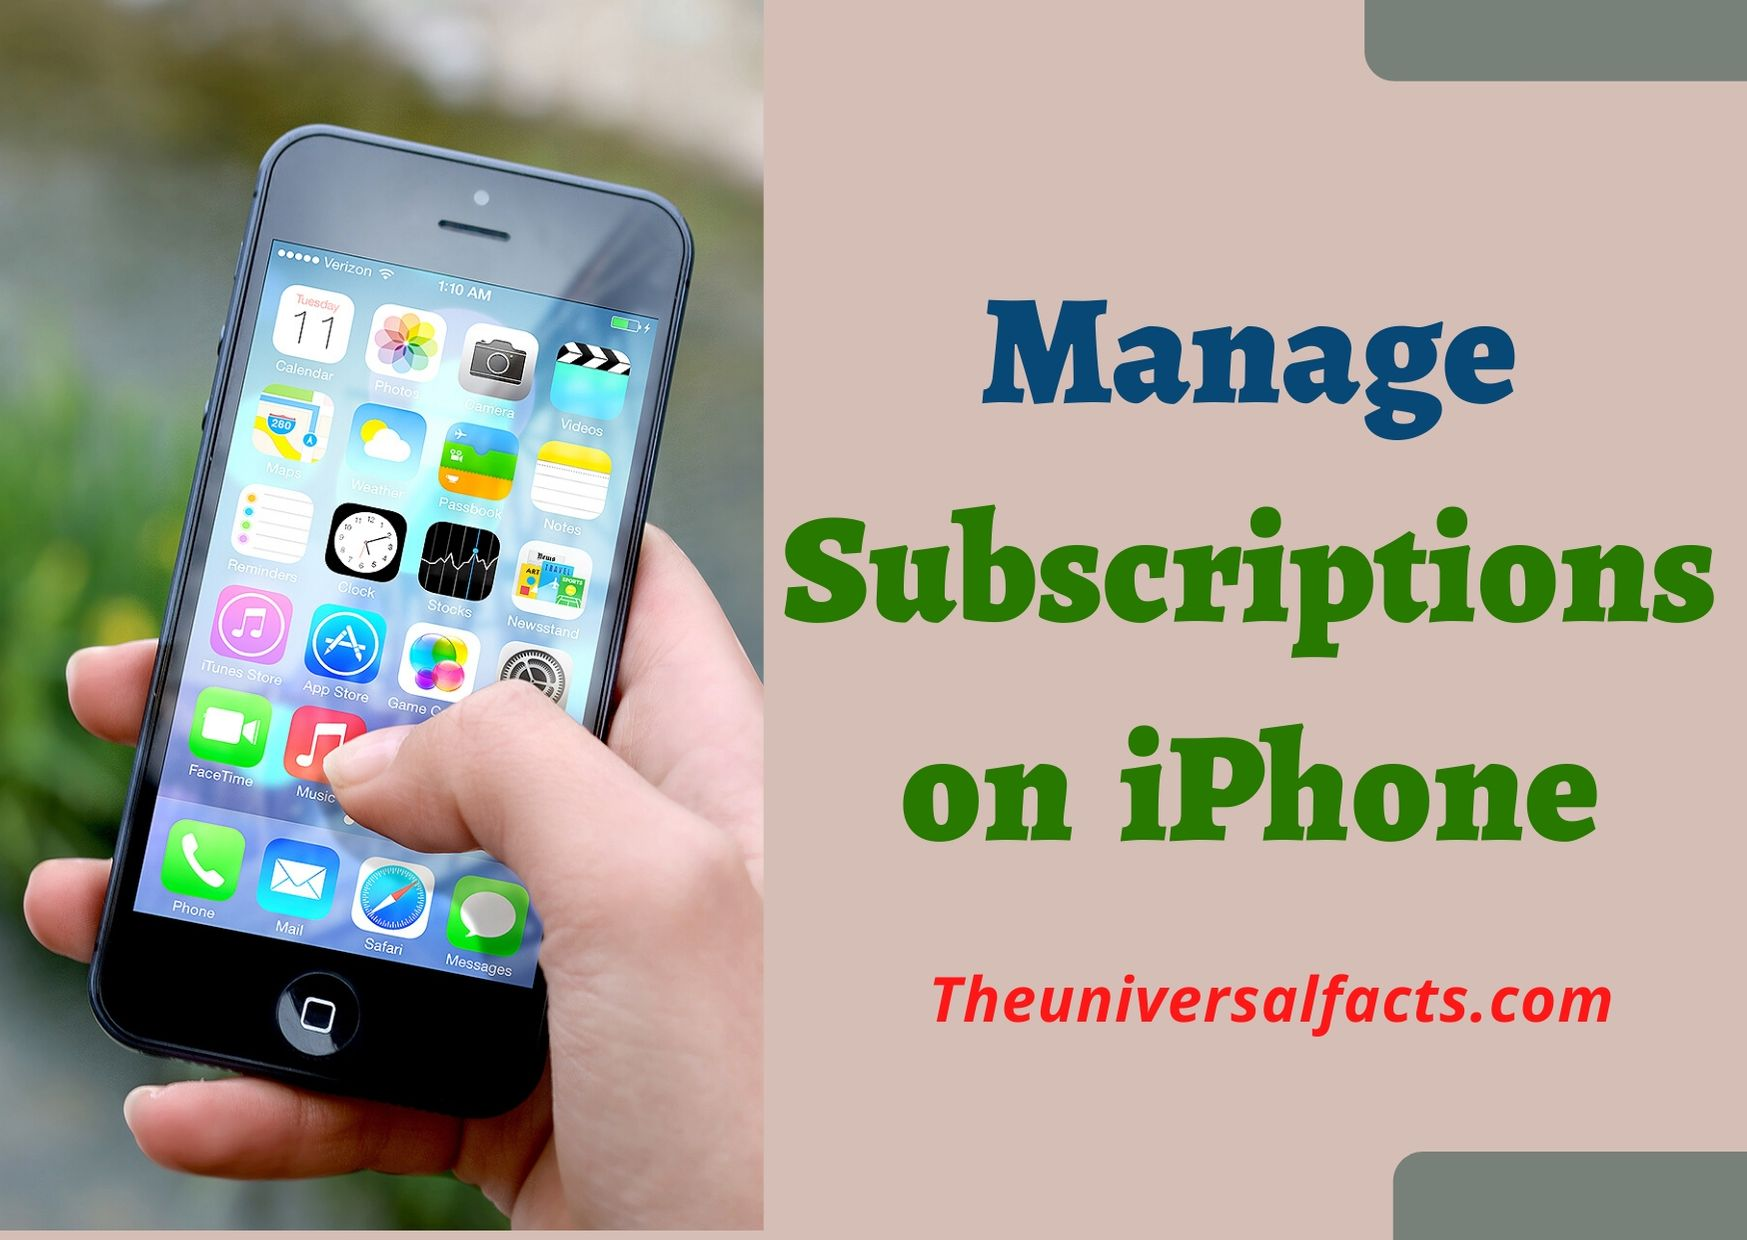 Manage Subscriptions on iPhone: Two Methods are Explained